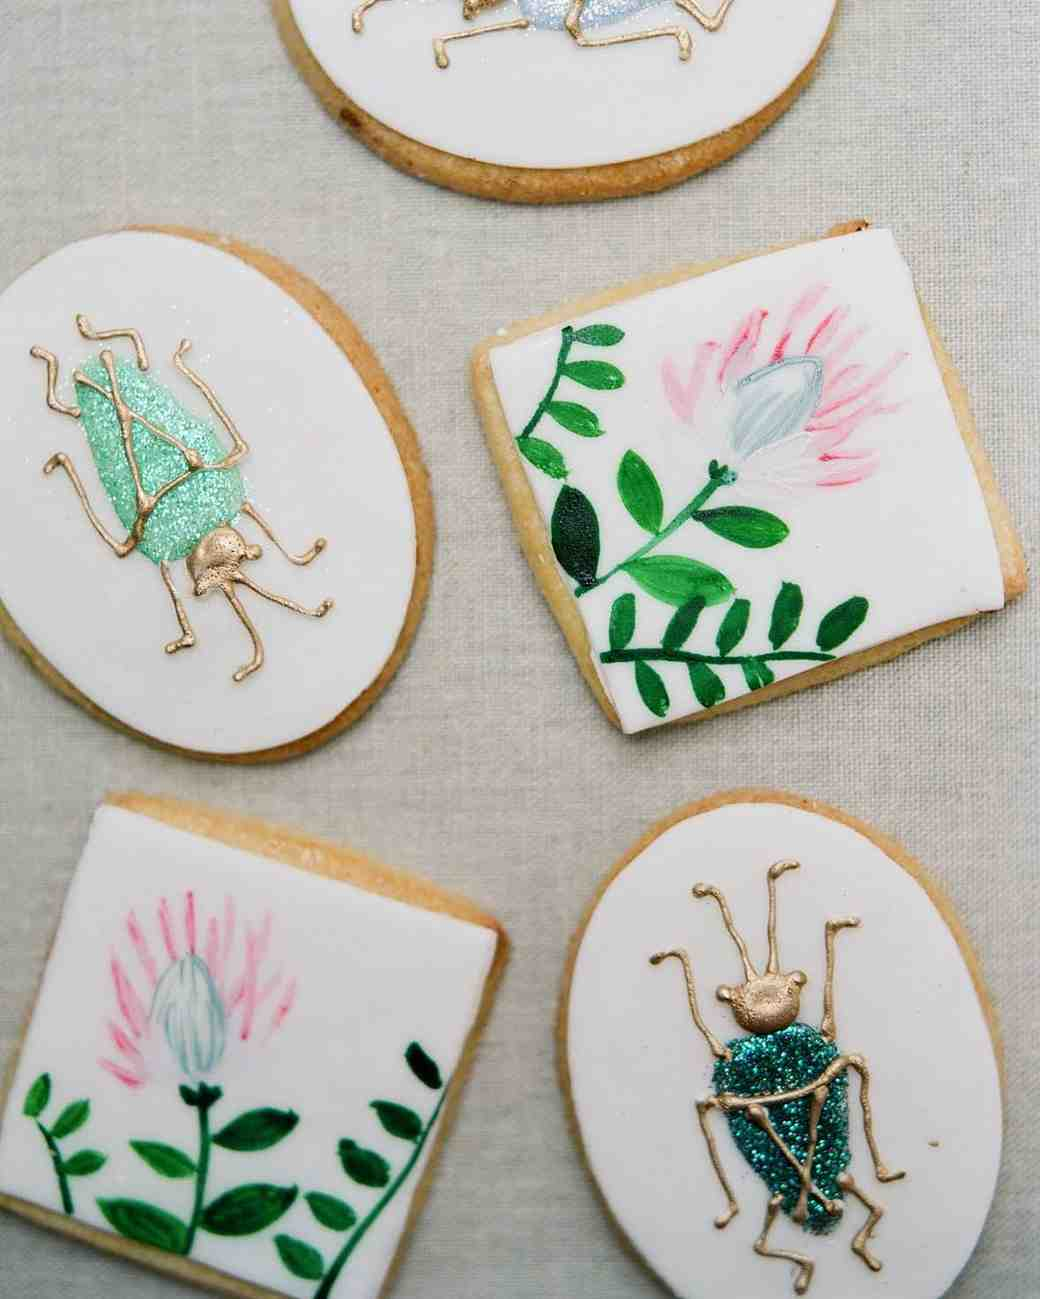 meg nick wedding painted cookies